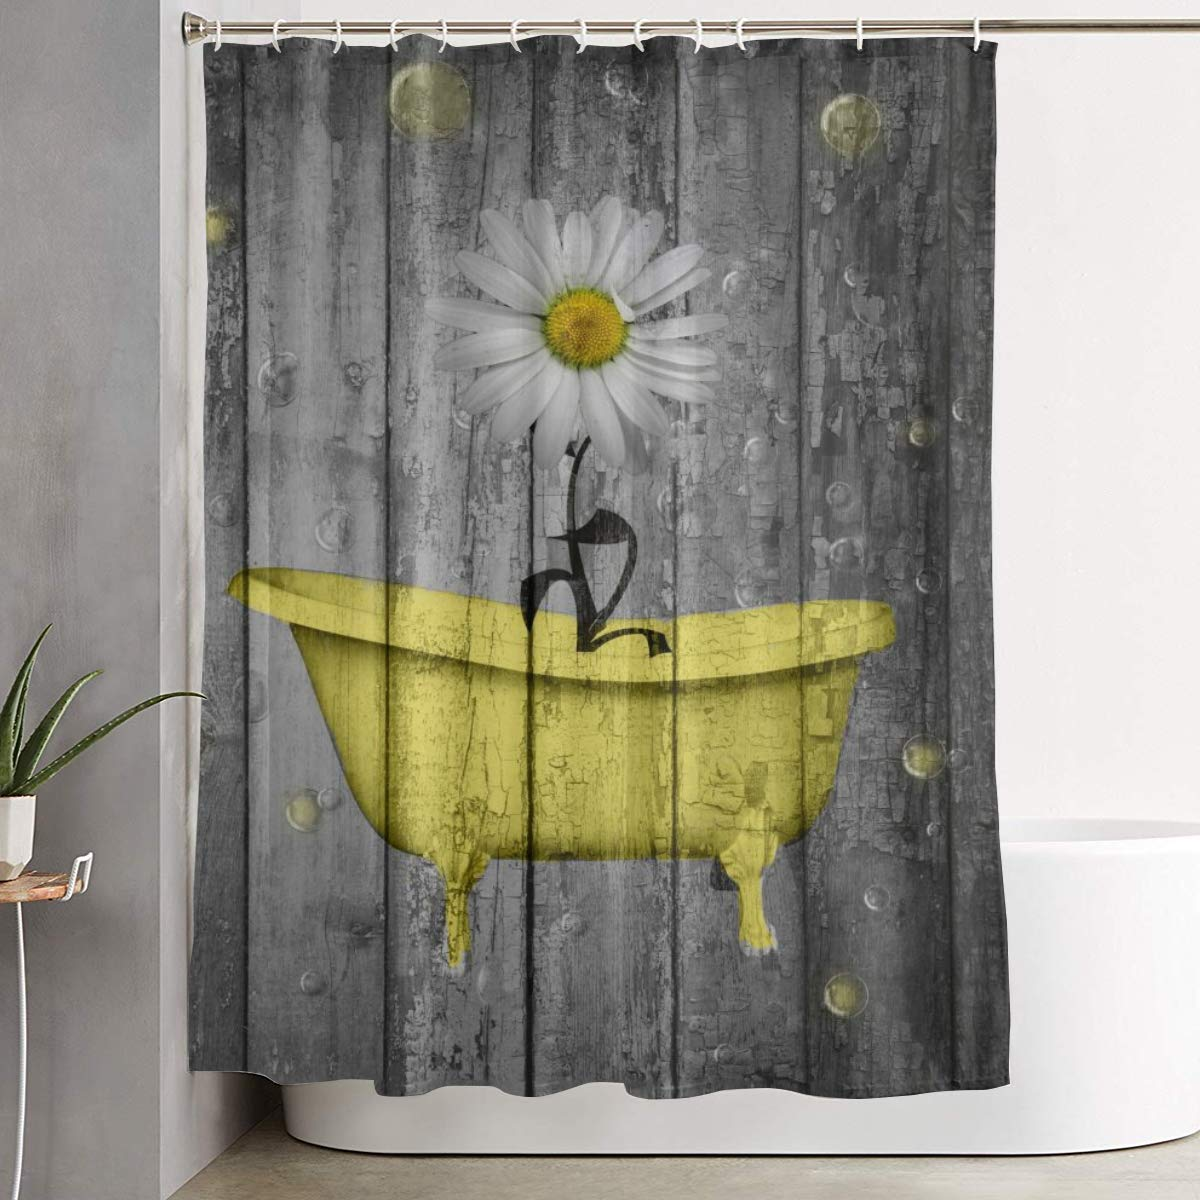 Amonee-YL Yellow Gray Daisy Flower Bubbles Rustic Farmhouse Polyester Fabric Shower Curtain Sets with 12 Hooks,Modern Bathroom Home Decor